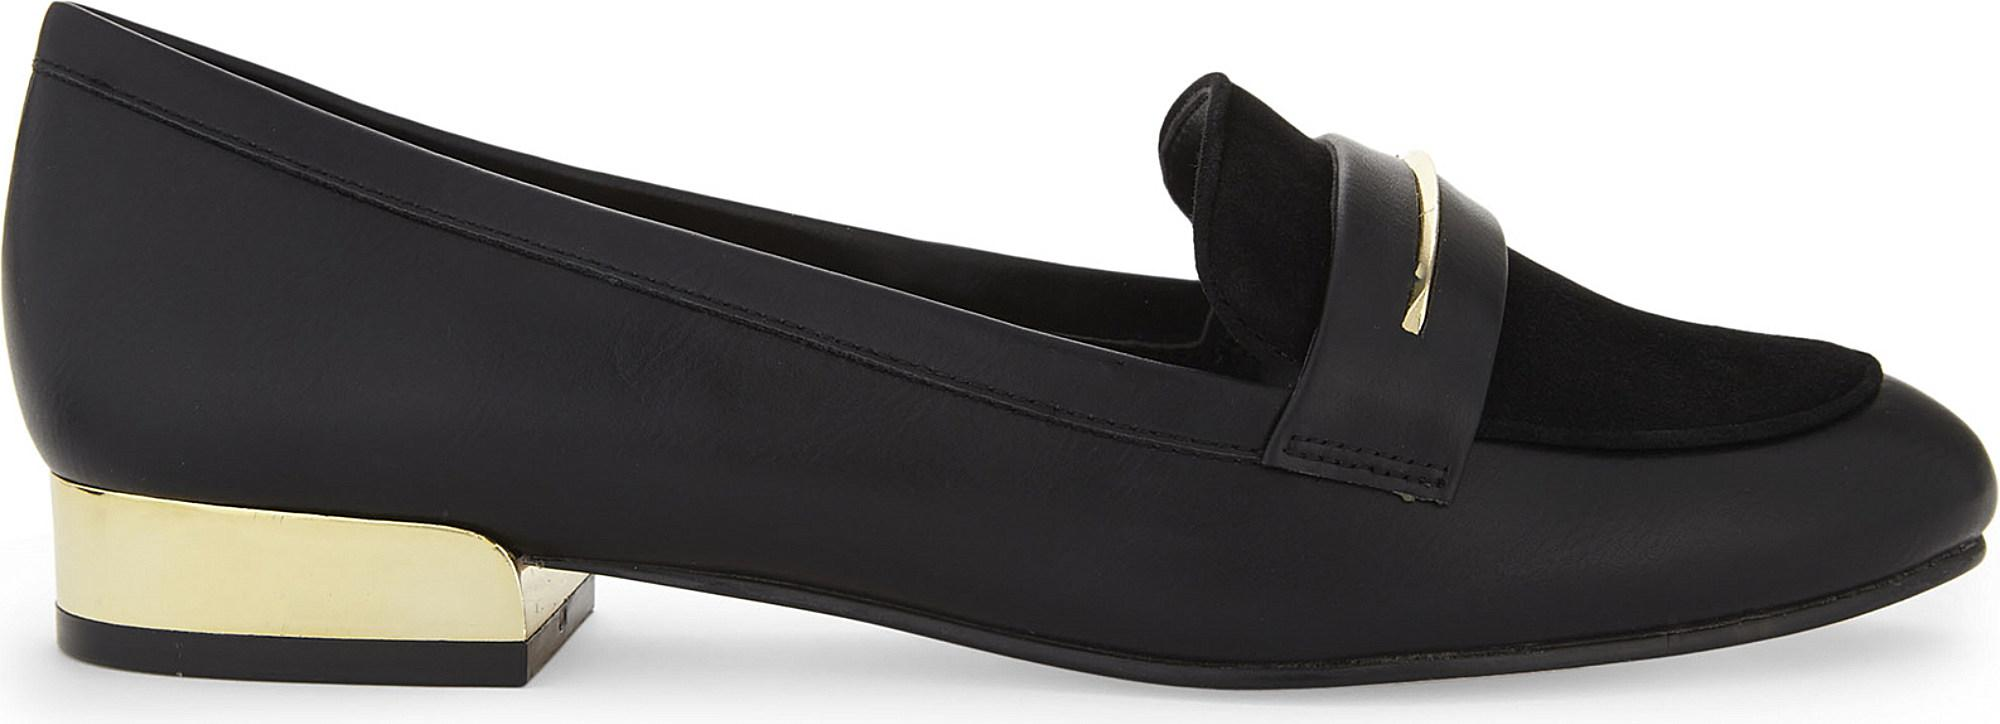 a9ab5cfc908 Lyst - ALDO Claurinda Faux-leather Loafers in Black